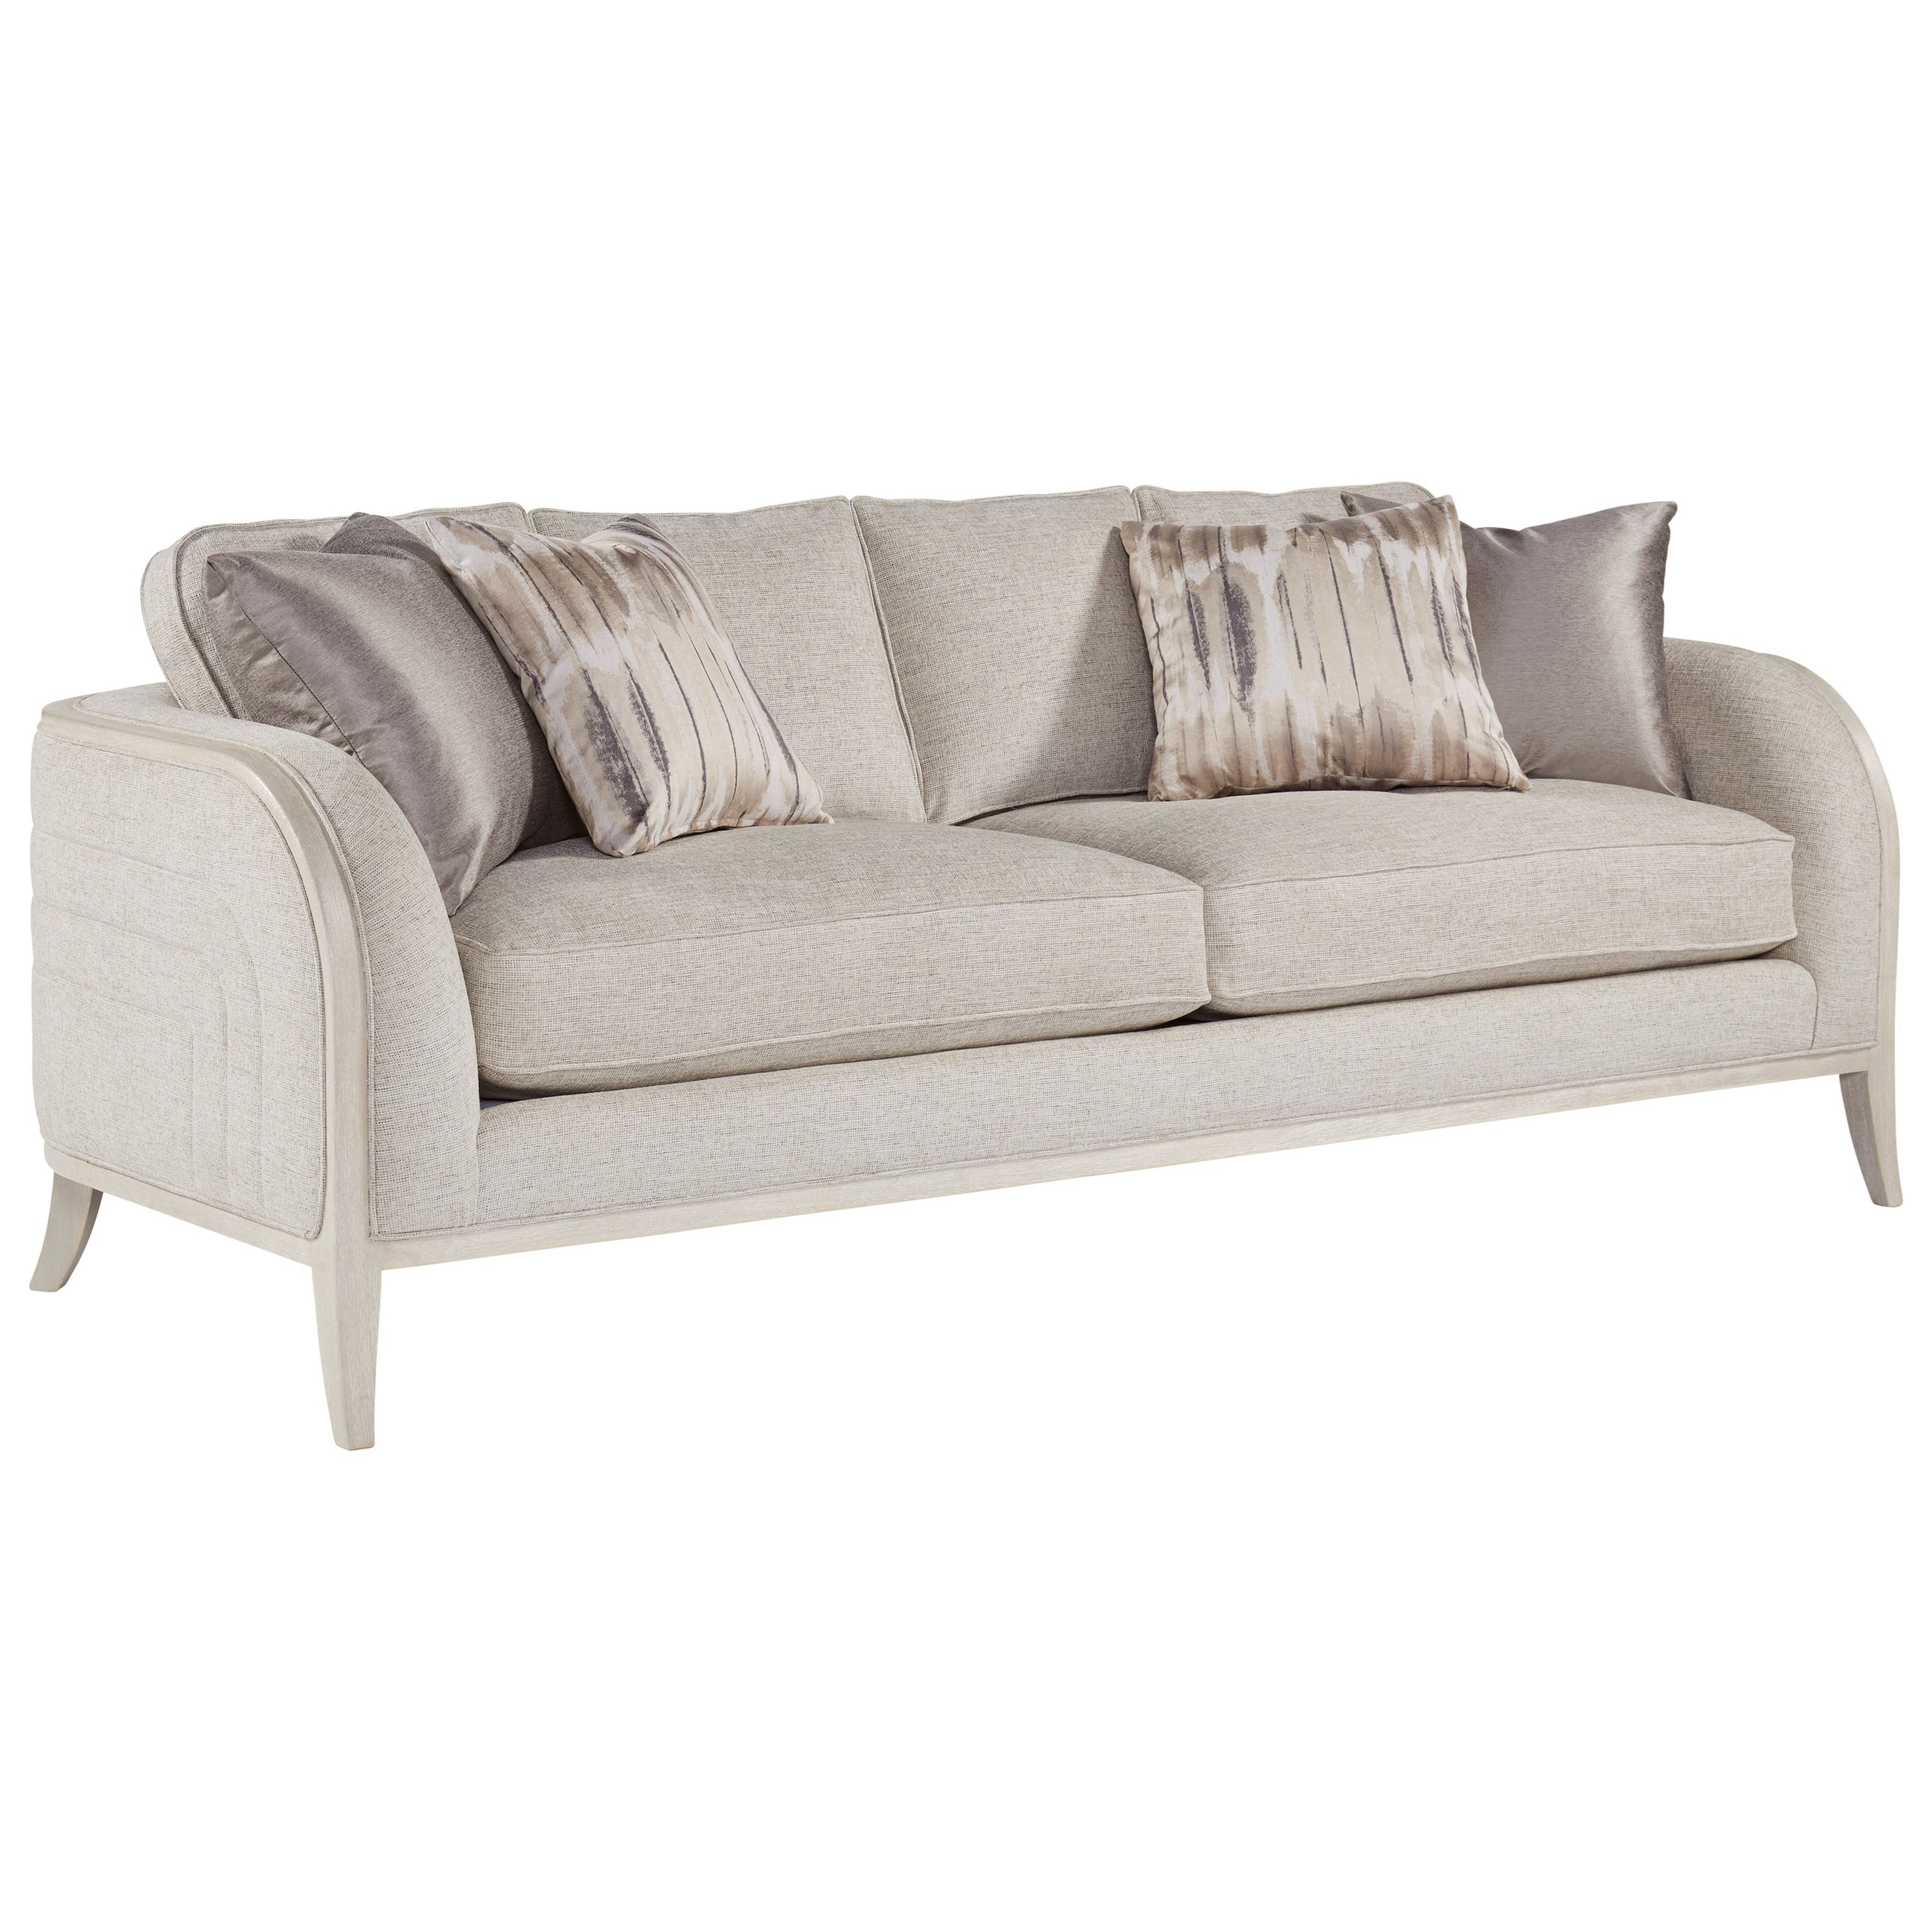 La Scala Upholstery Sofa by Klien Furniture at Sprintz Furniture